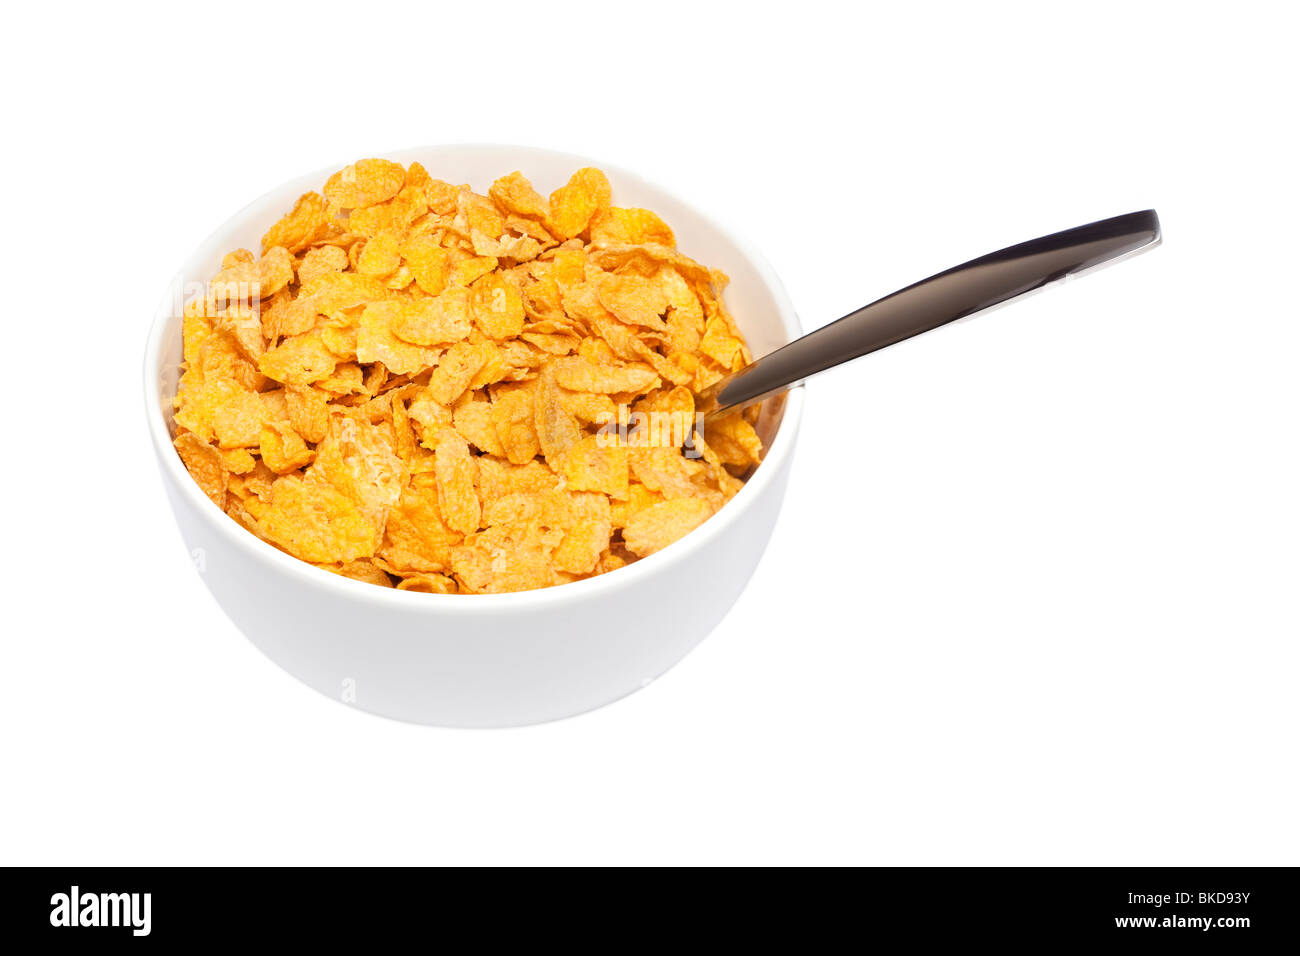 Cornflakes breakfast cereal in a white bowl with spoon - Stock Image